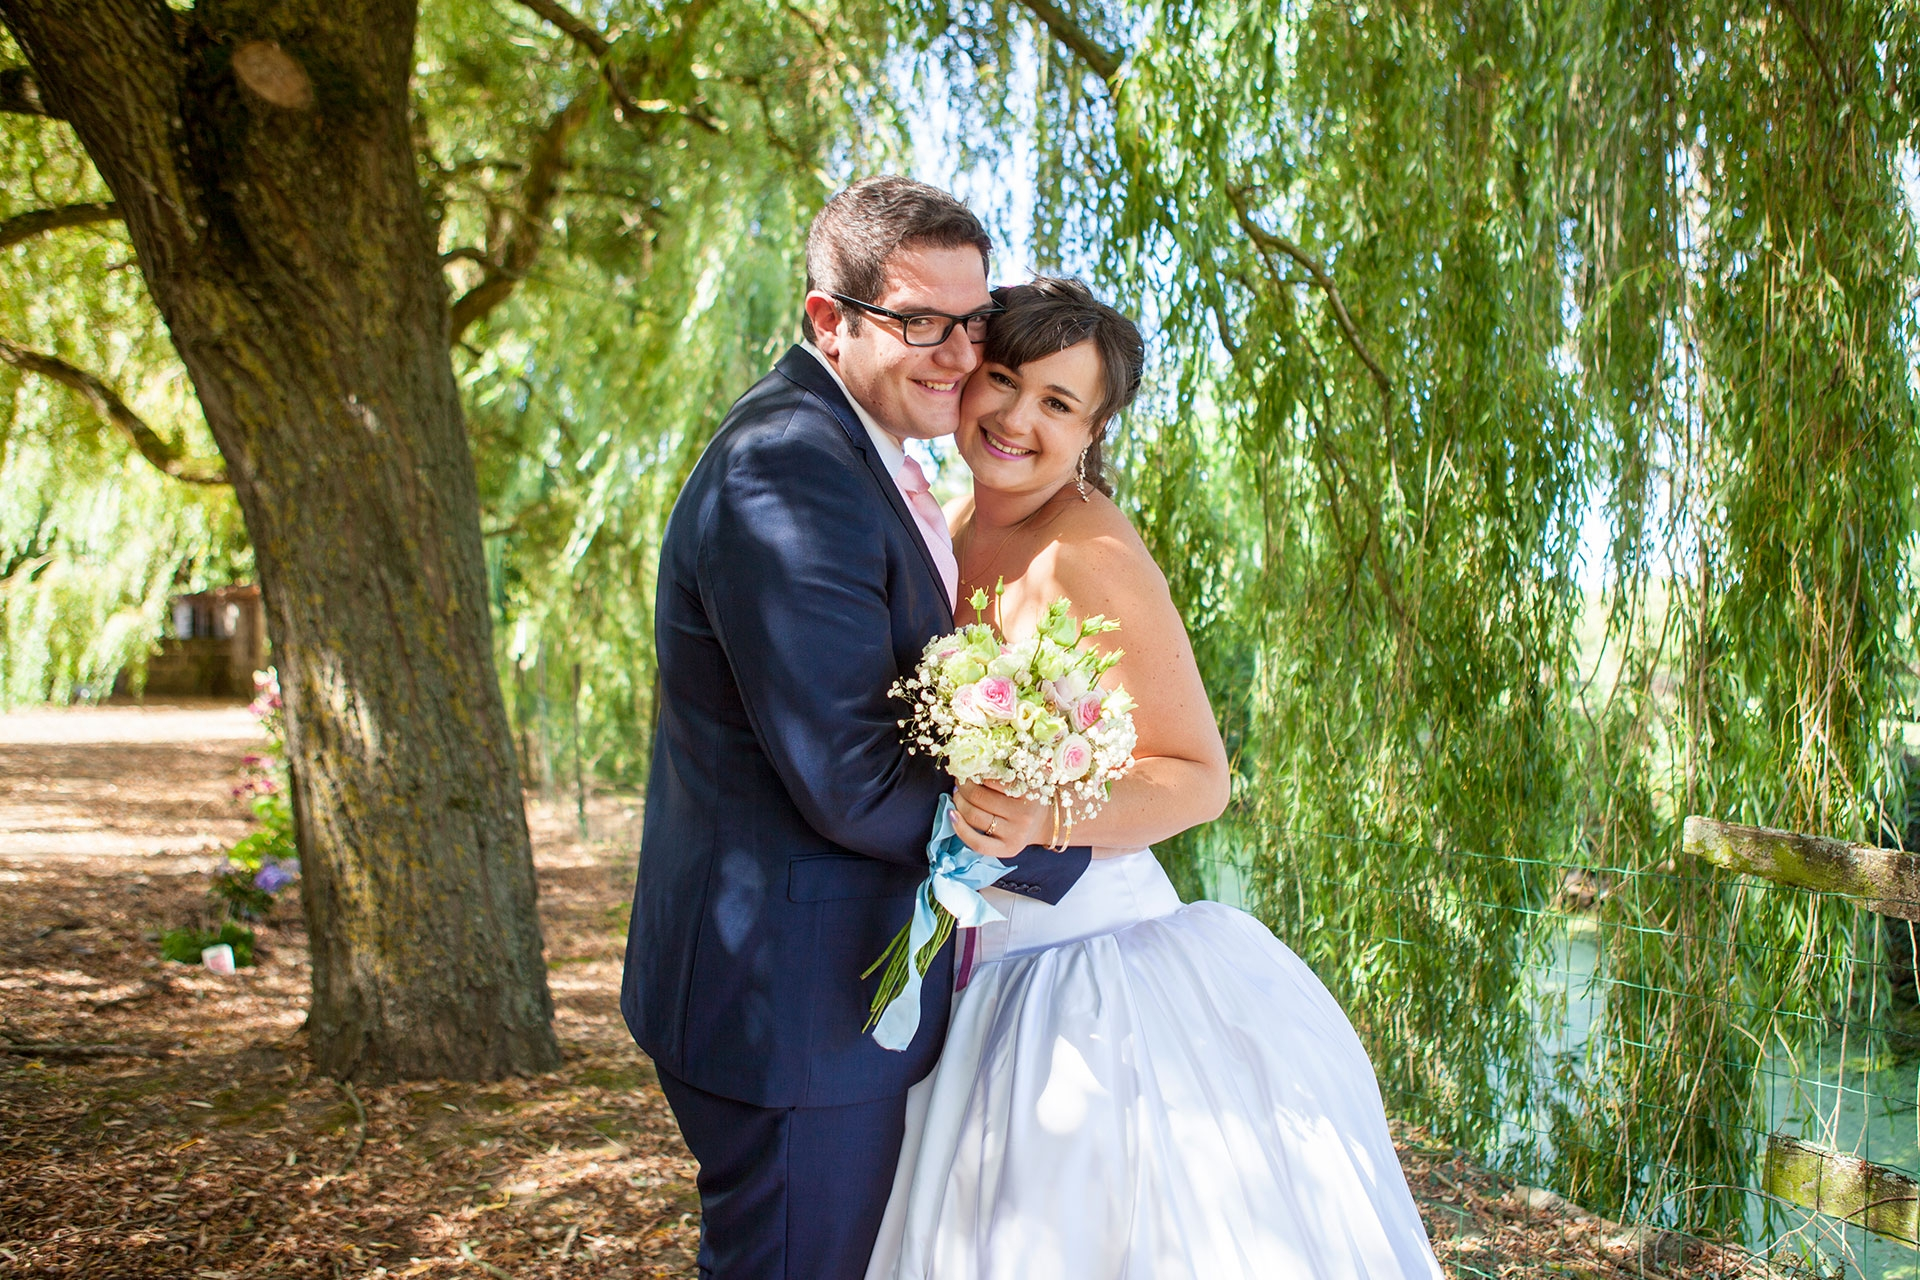 particuliers-evenements-mariages-oui-france&philippe-28